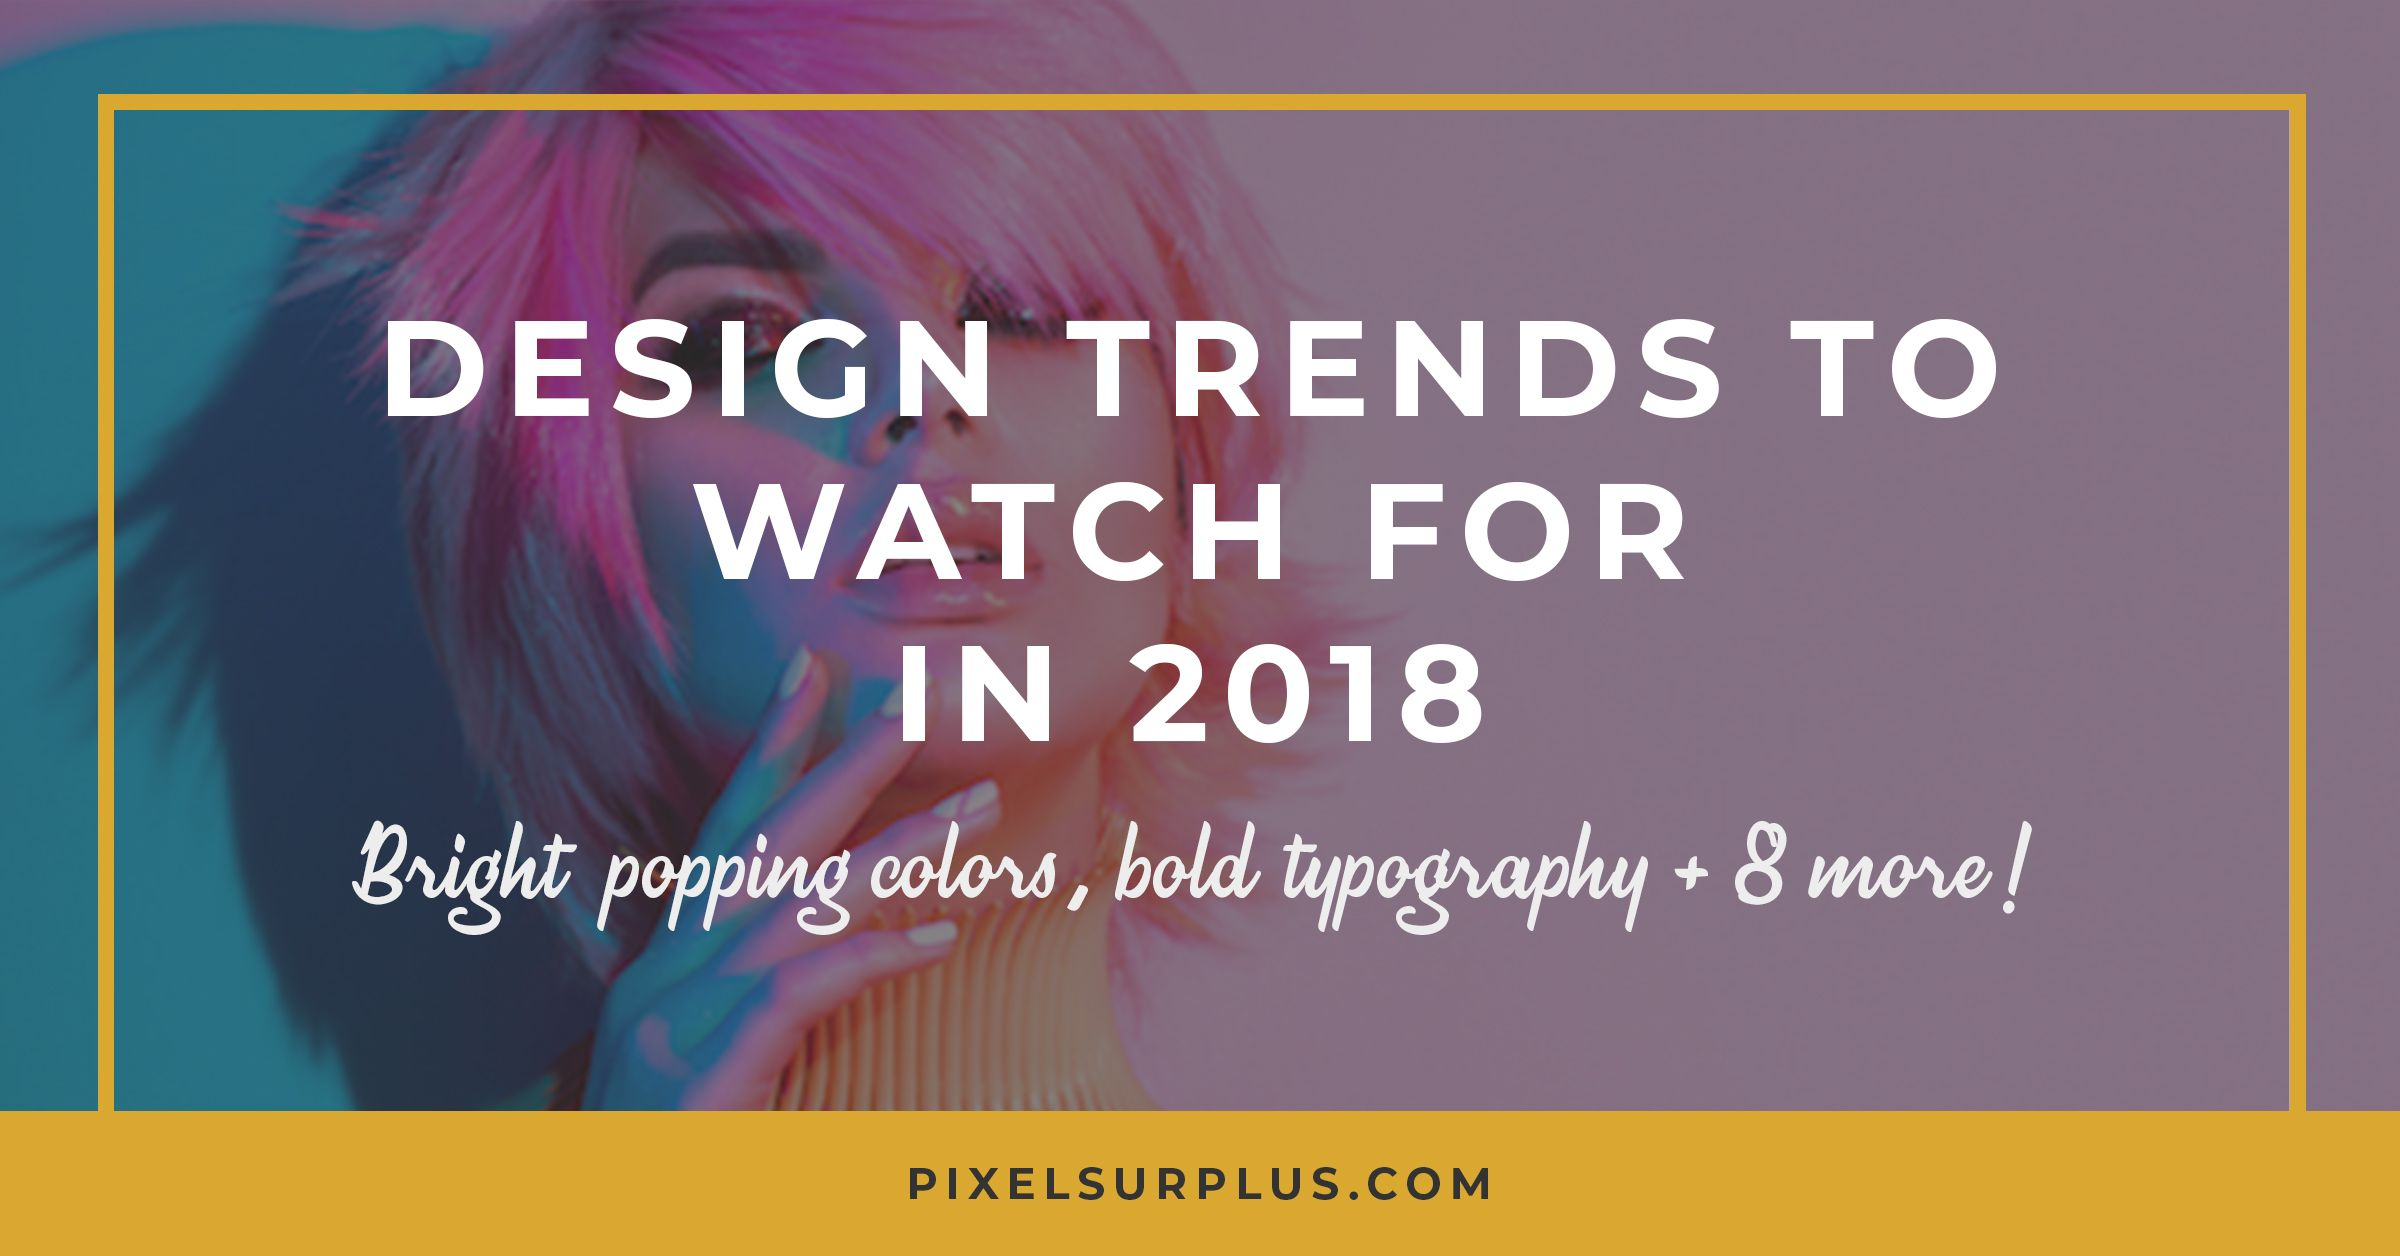 Graphic Design Trends To Watch For In 2018 Graphic Design Trends Design Trends Graphic Design Tips